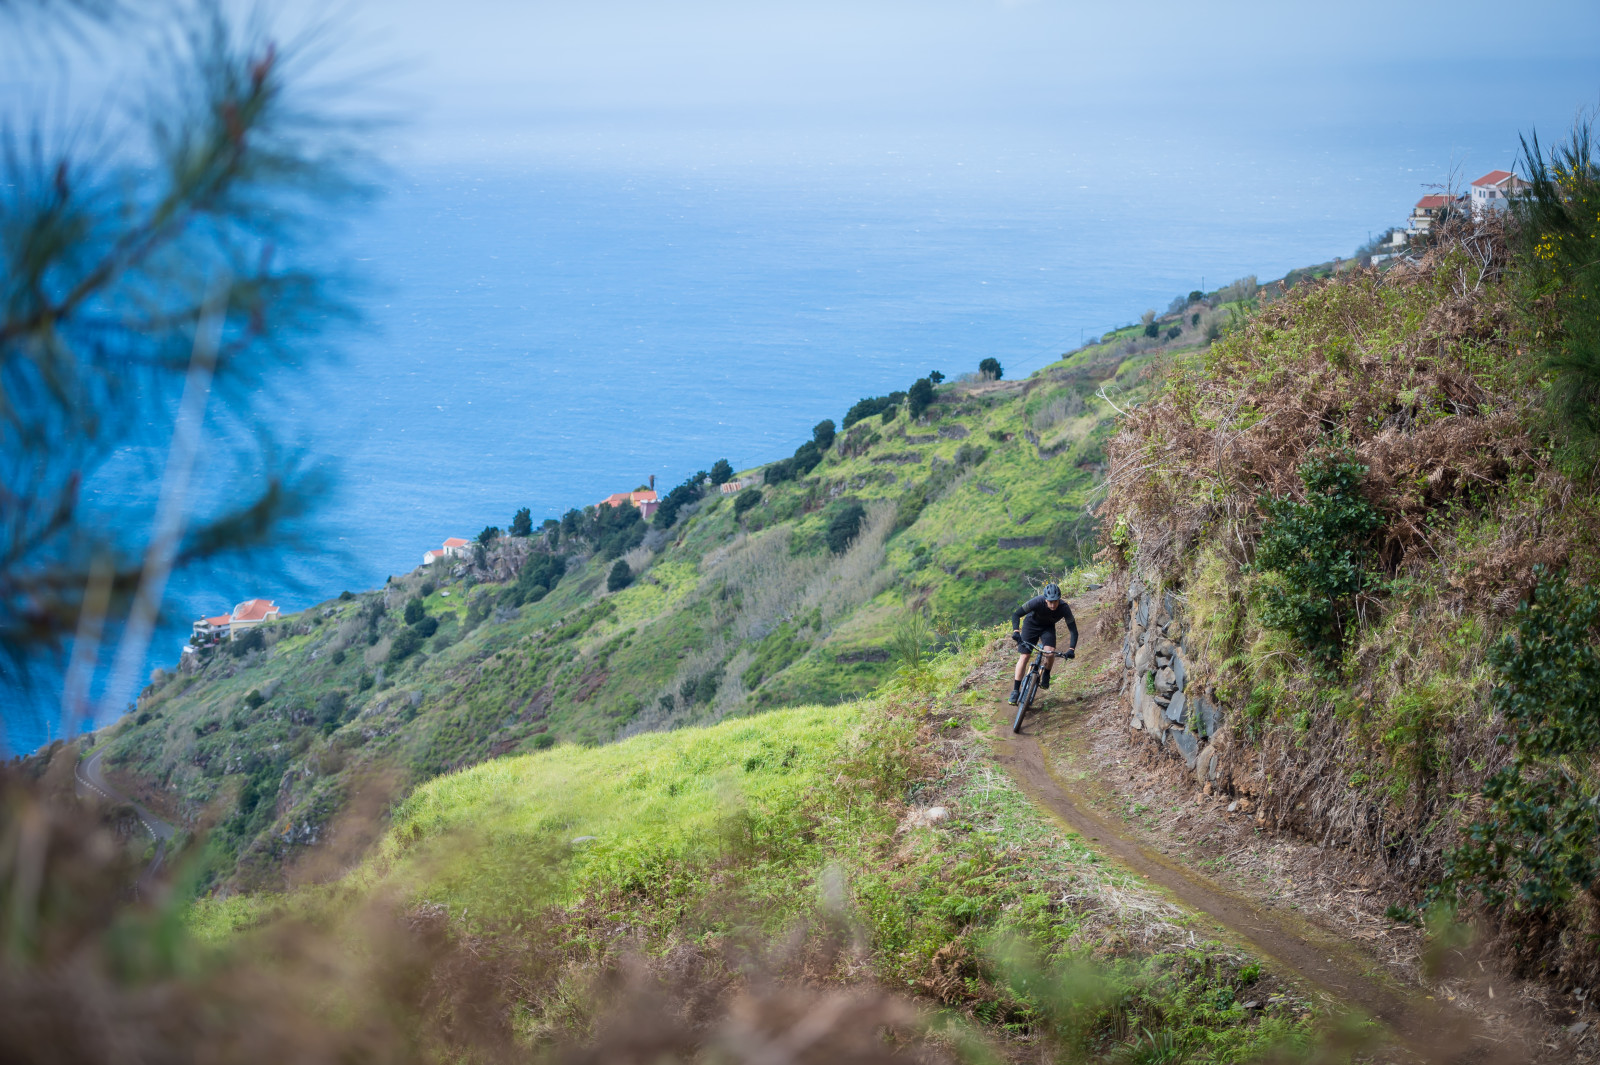 160318_YT_PressCamp_Madeira_Johan-Hjord_Hector_Pic02